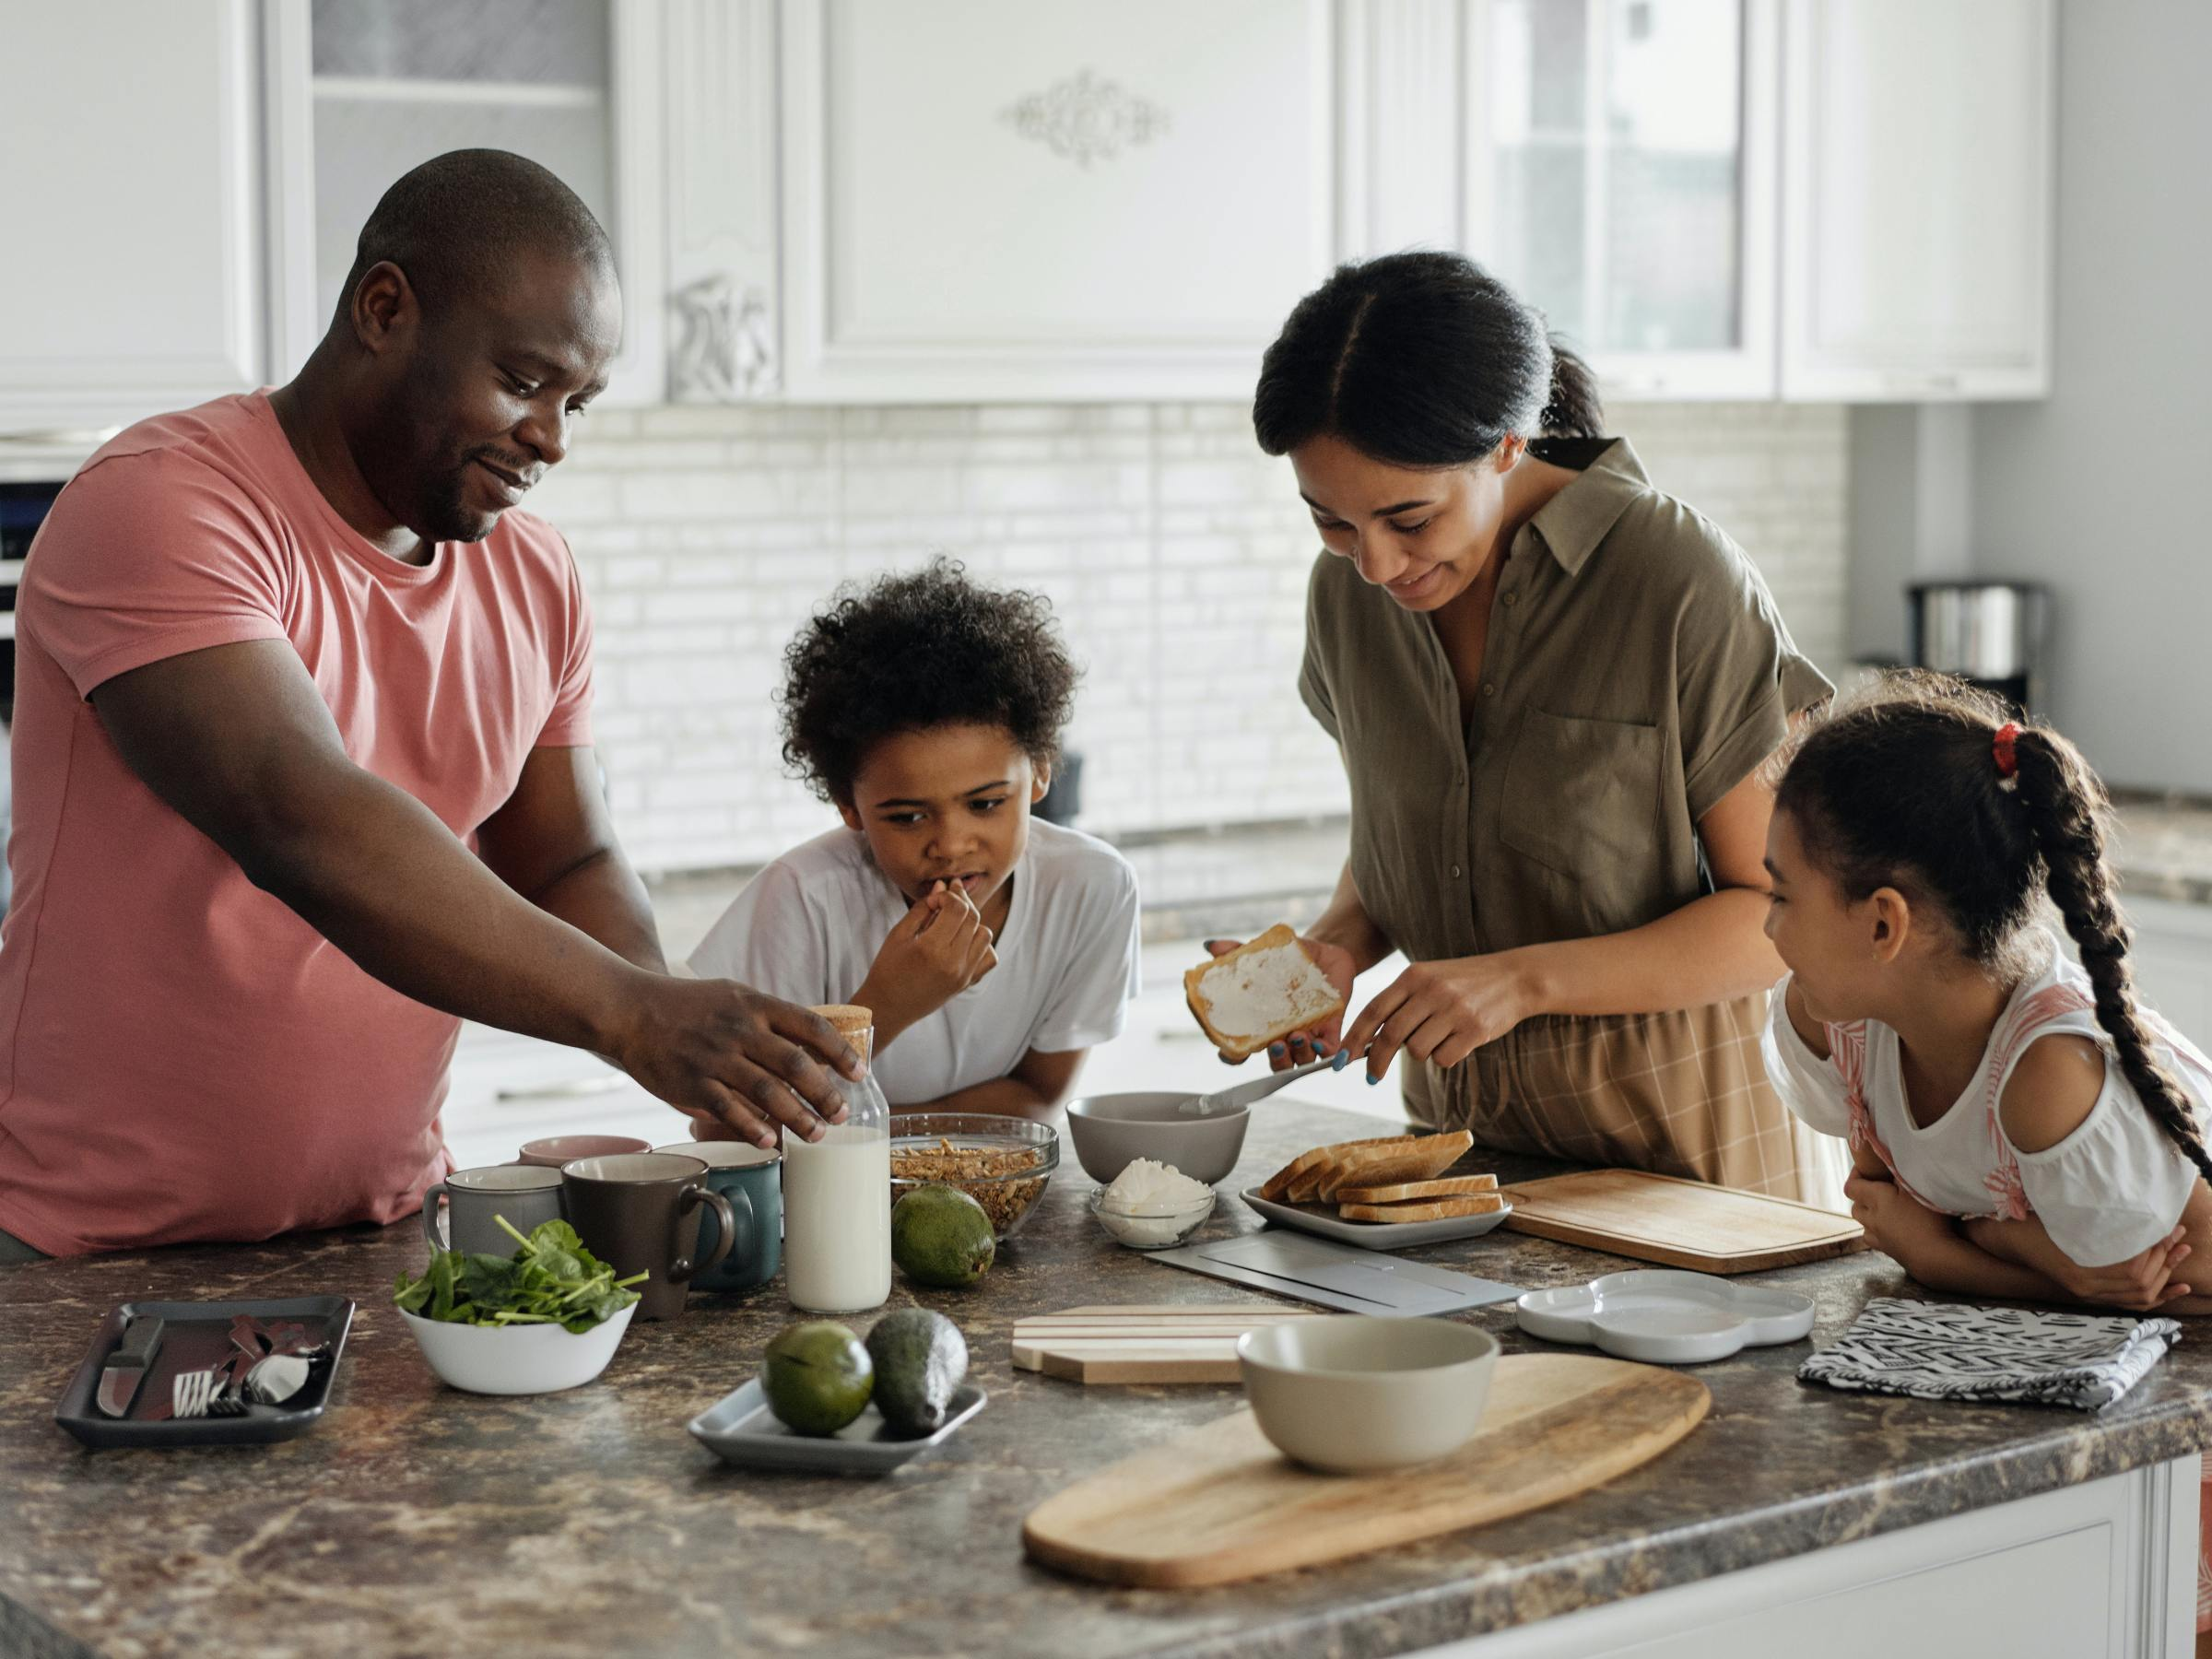 Cooking With Kids as a Family from Pexels by August de Richelieu